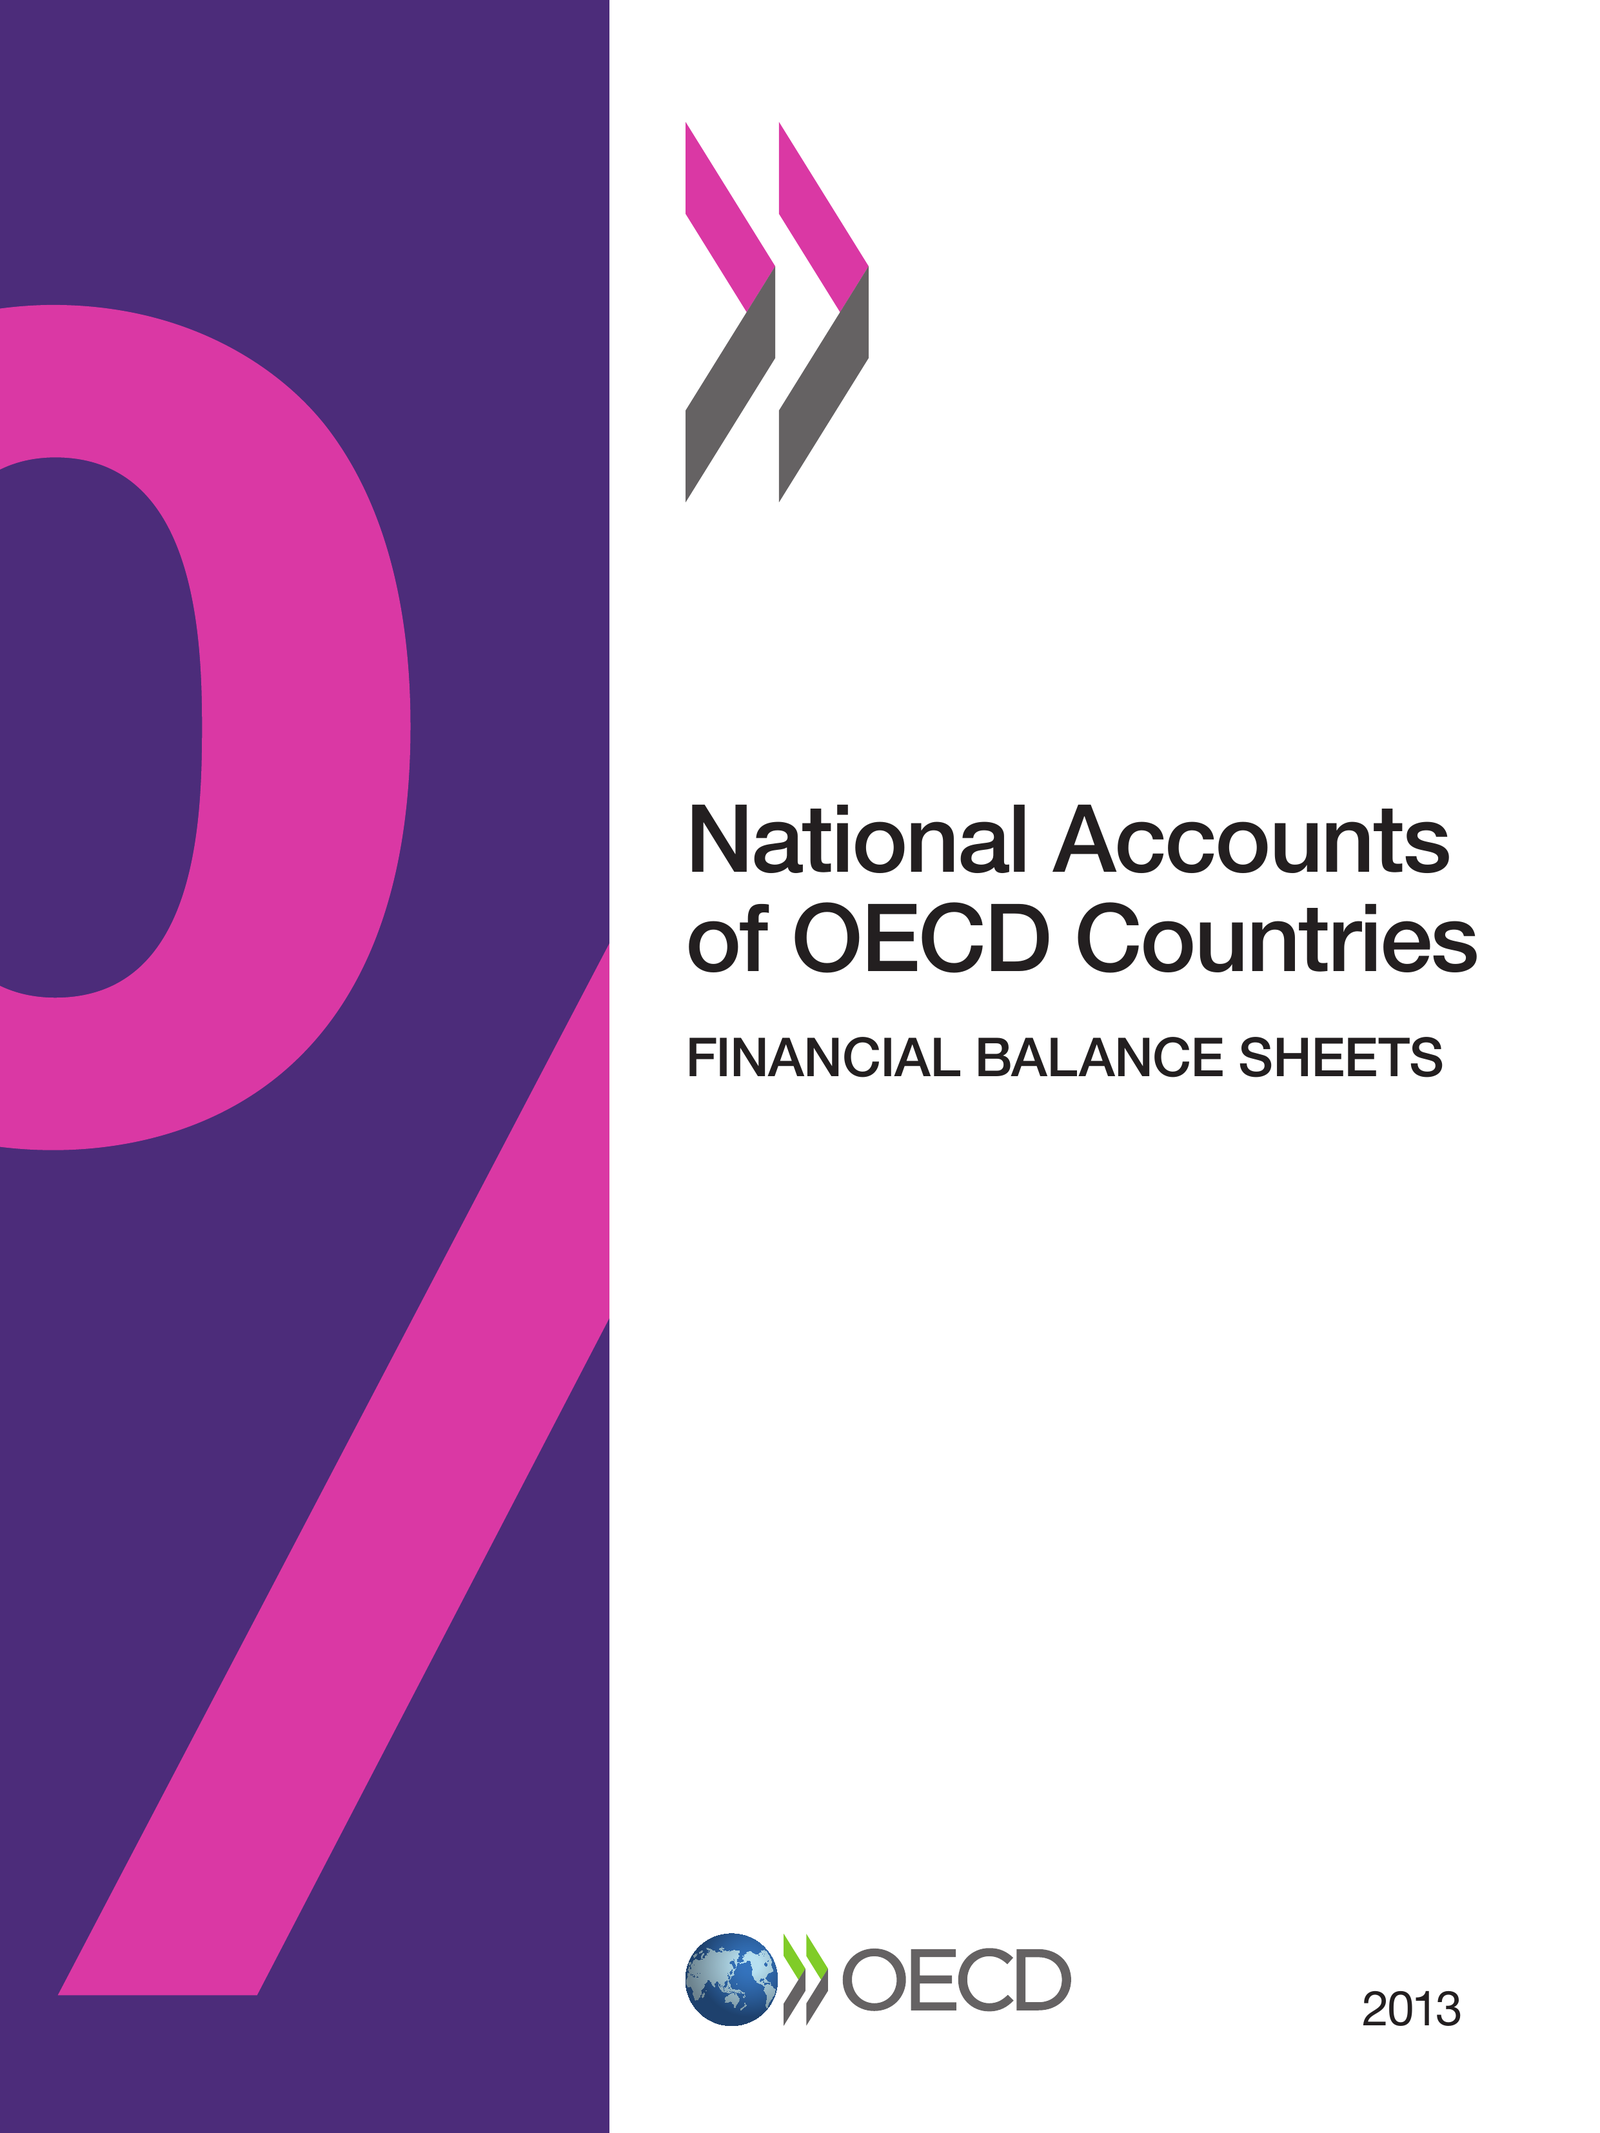 National Accounts of OECD Countries, Financial Balance Sheets 2013